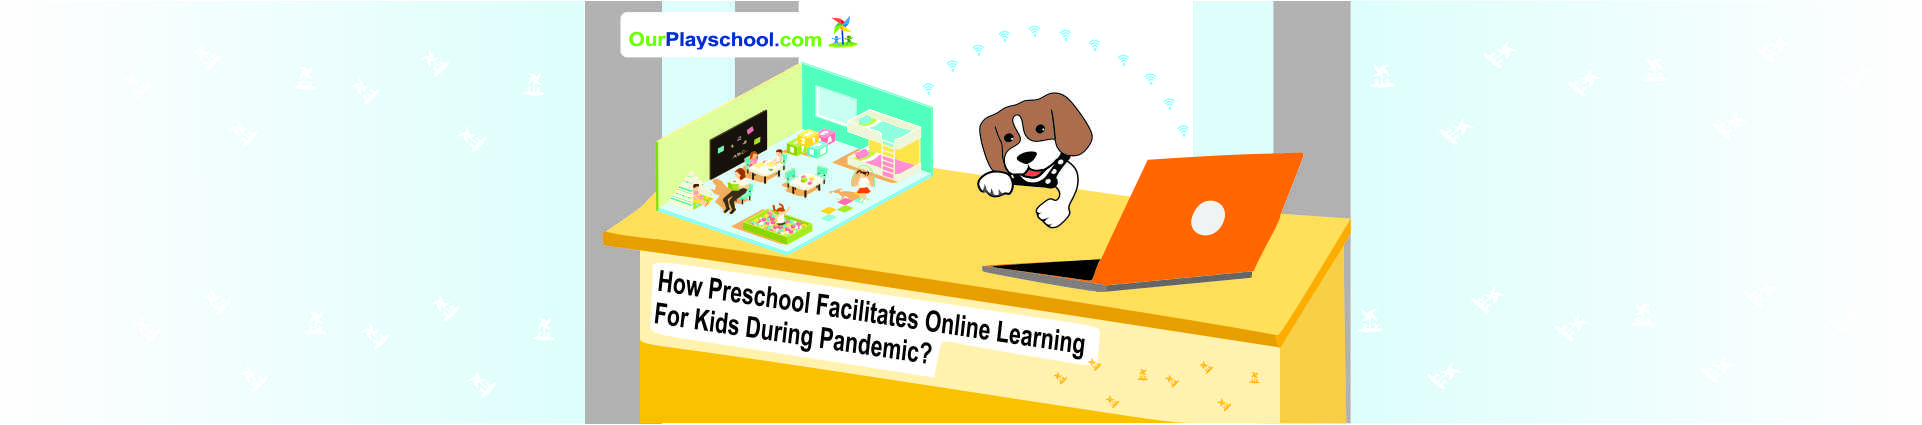 Preschool Facilitates Online Learning for Kids during Pandemic